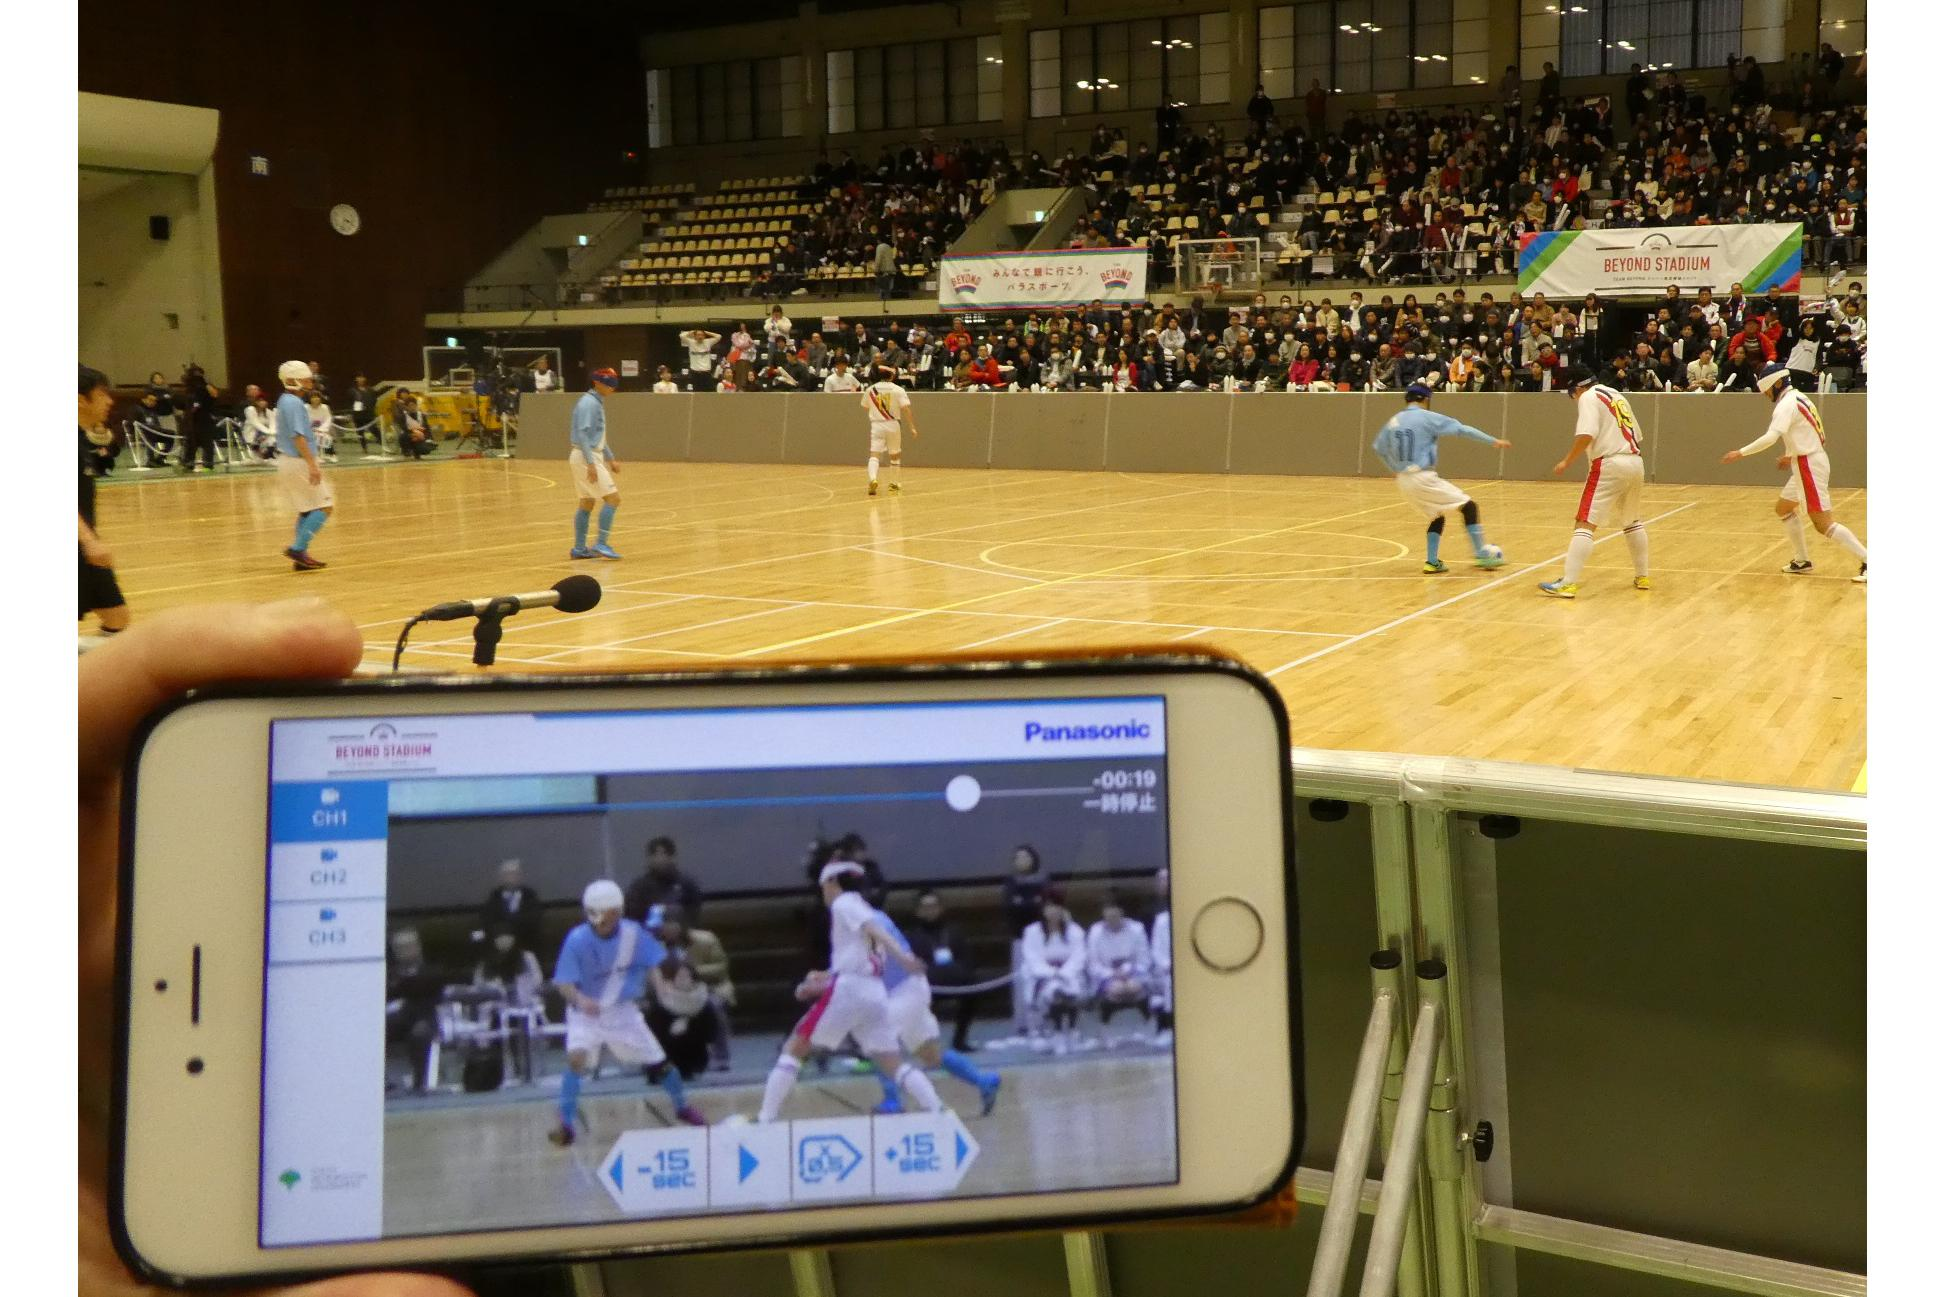 photo: People watching blind football using Panasonic's multi-video streaming service